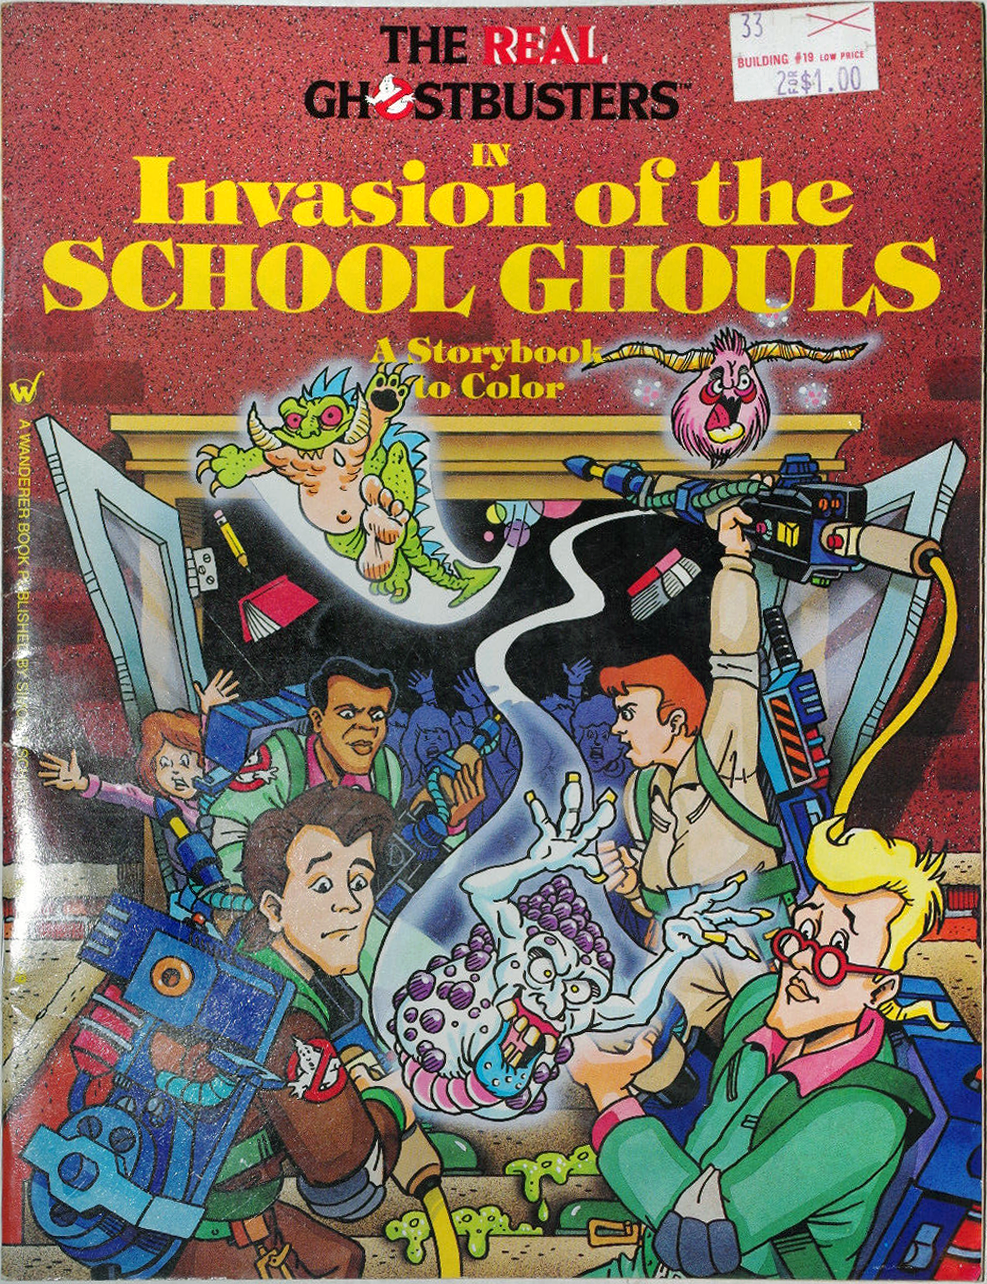 The Real Ghostbusters in Invasion of the School Ghouls: A Storybook to Color